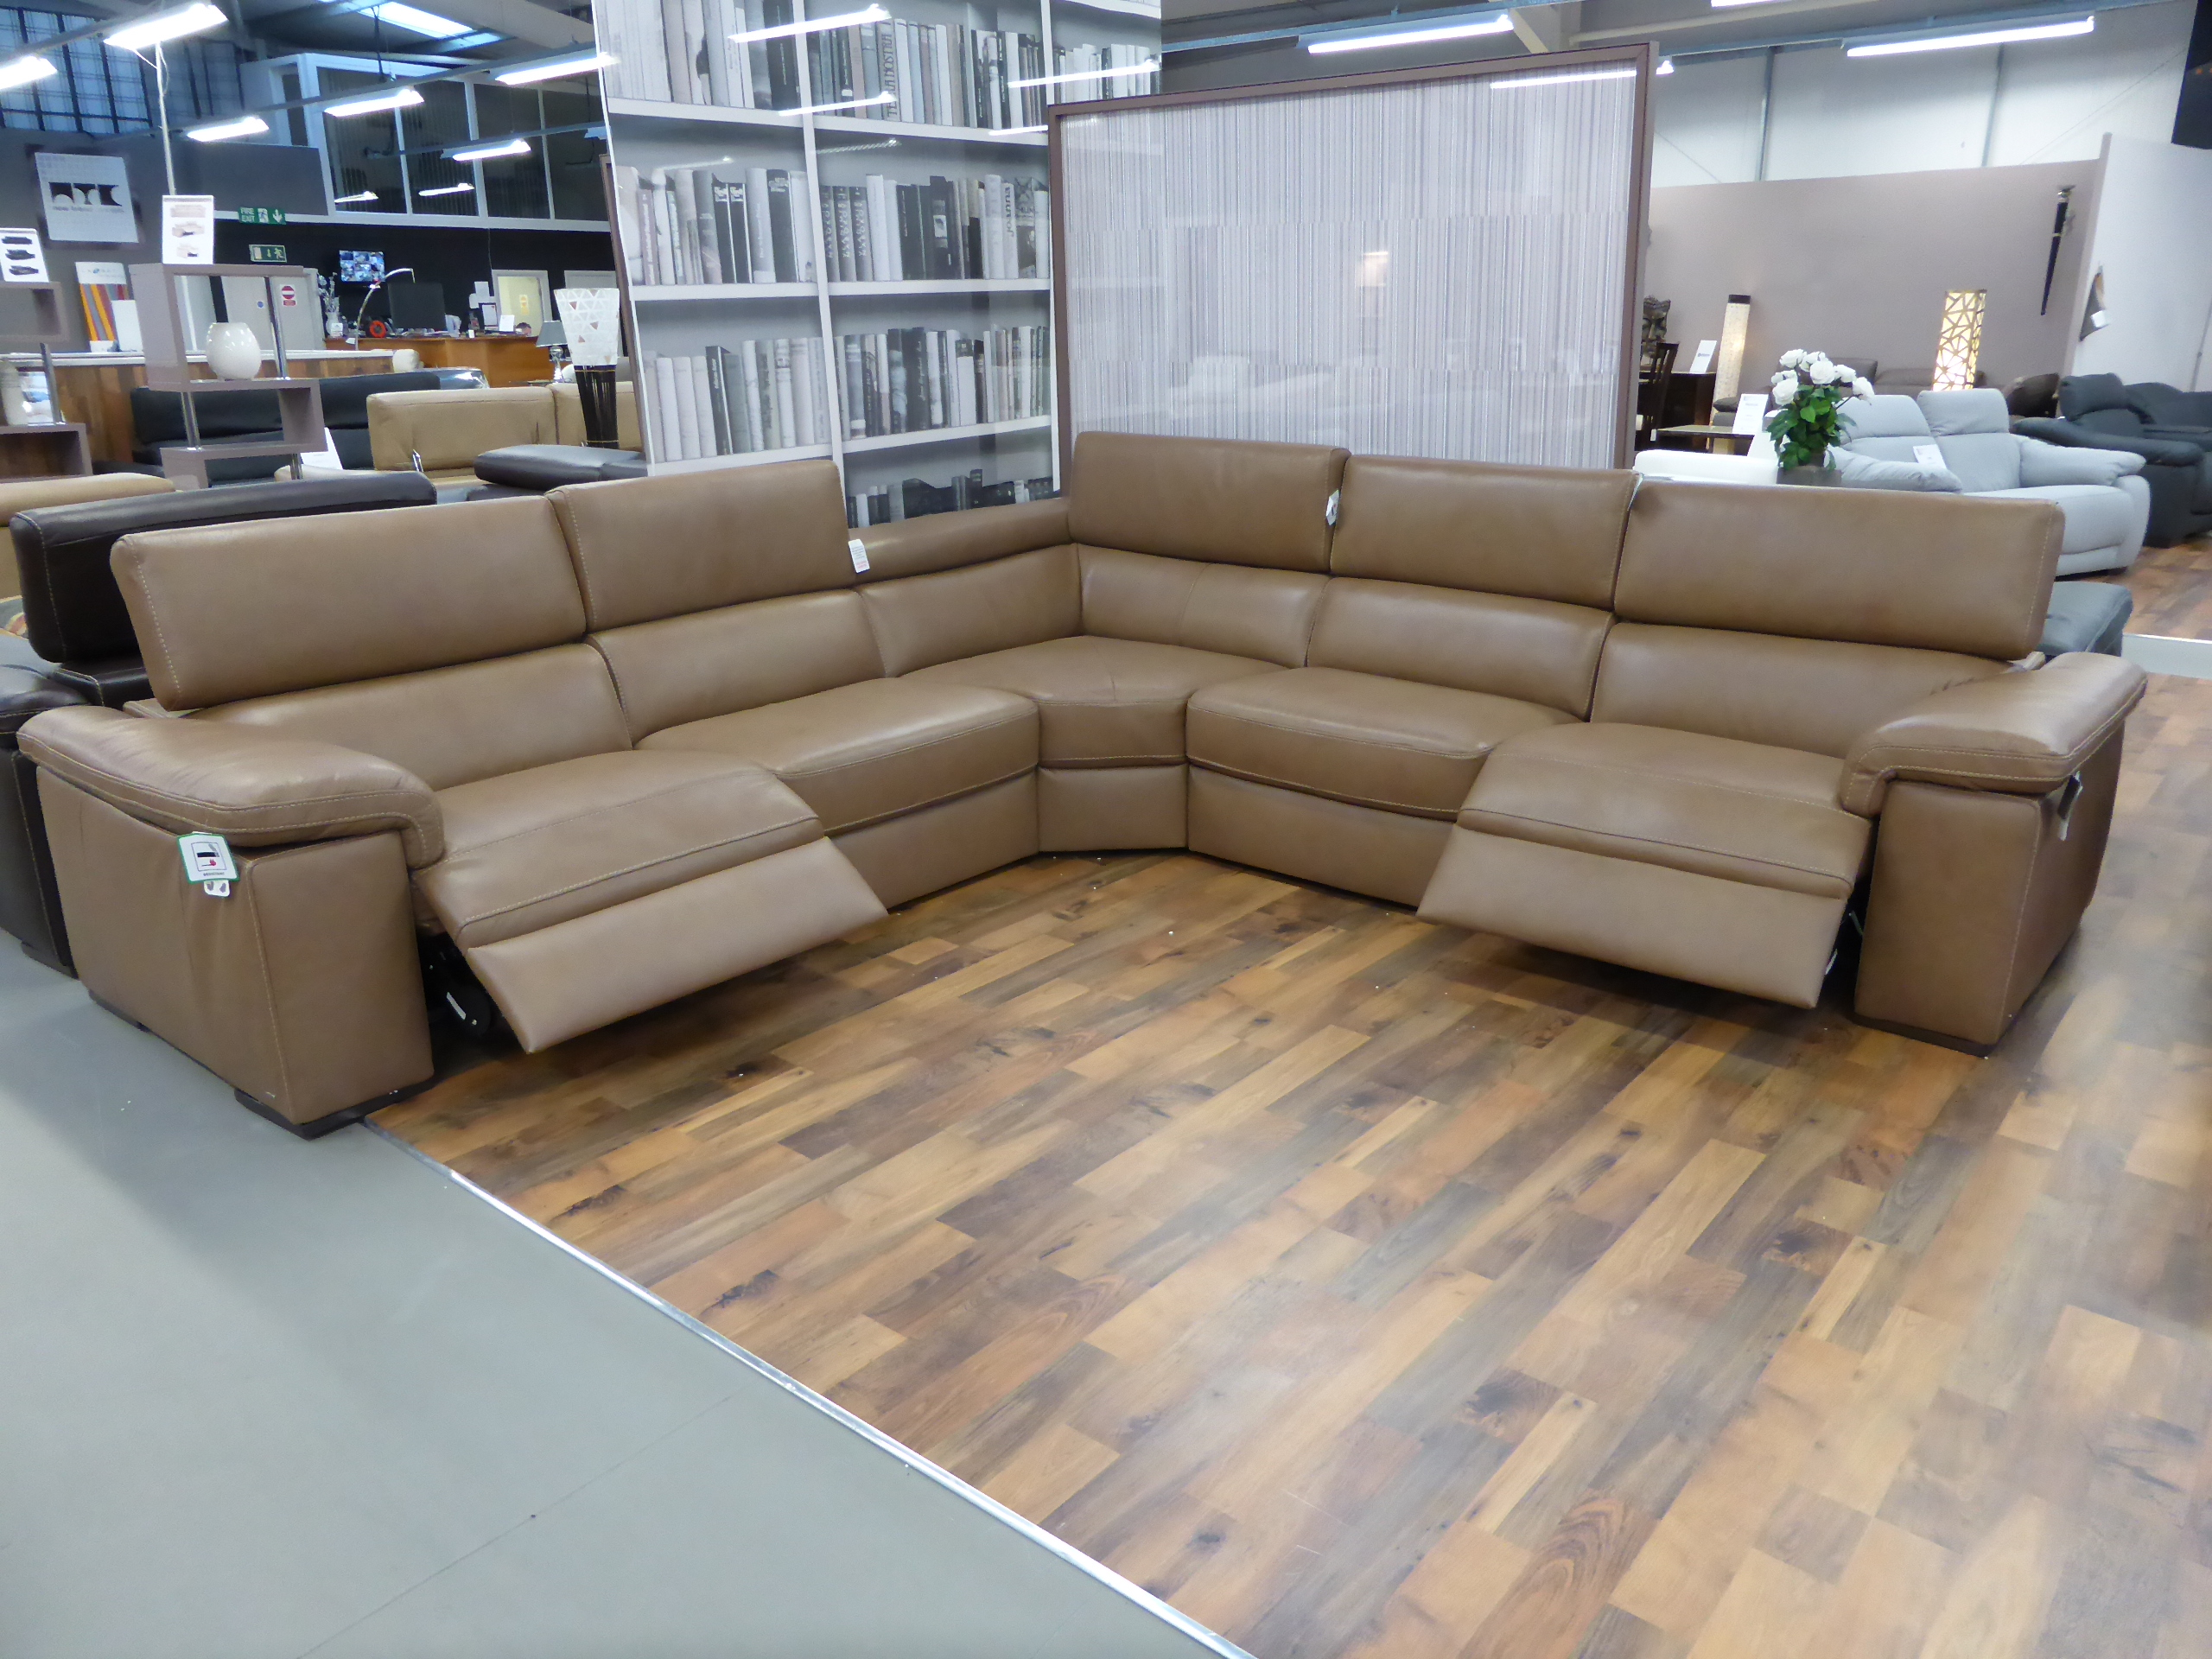 motion sofa definition corner bed with storage nz natuzzi editions panama modular electric in beige